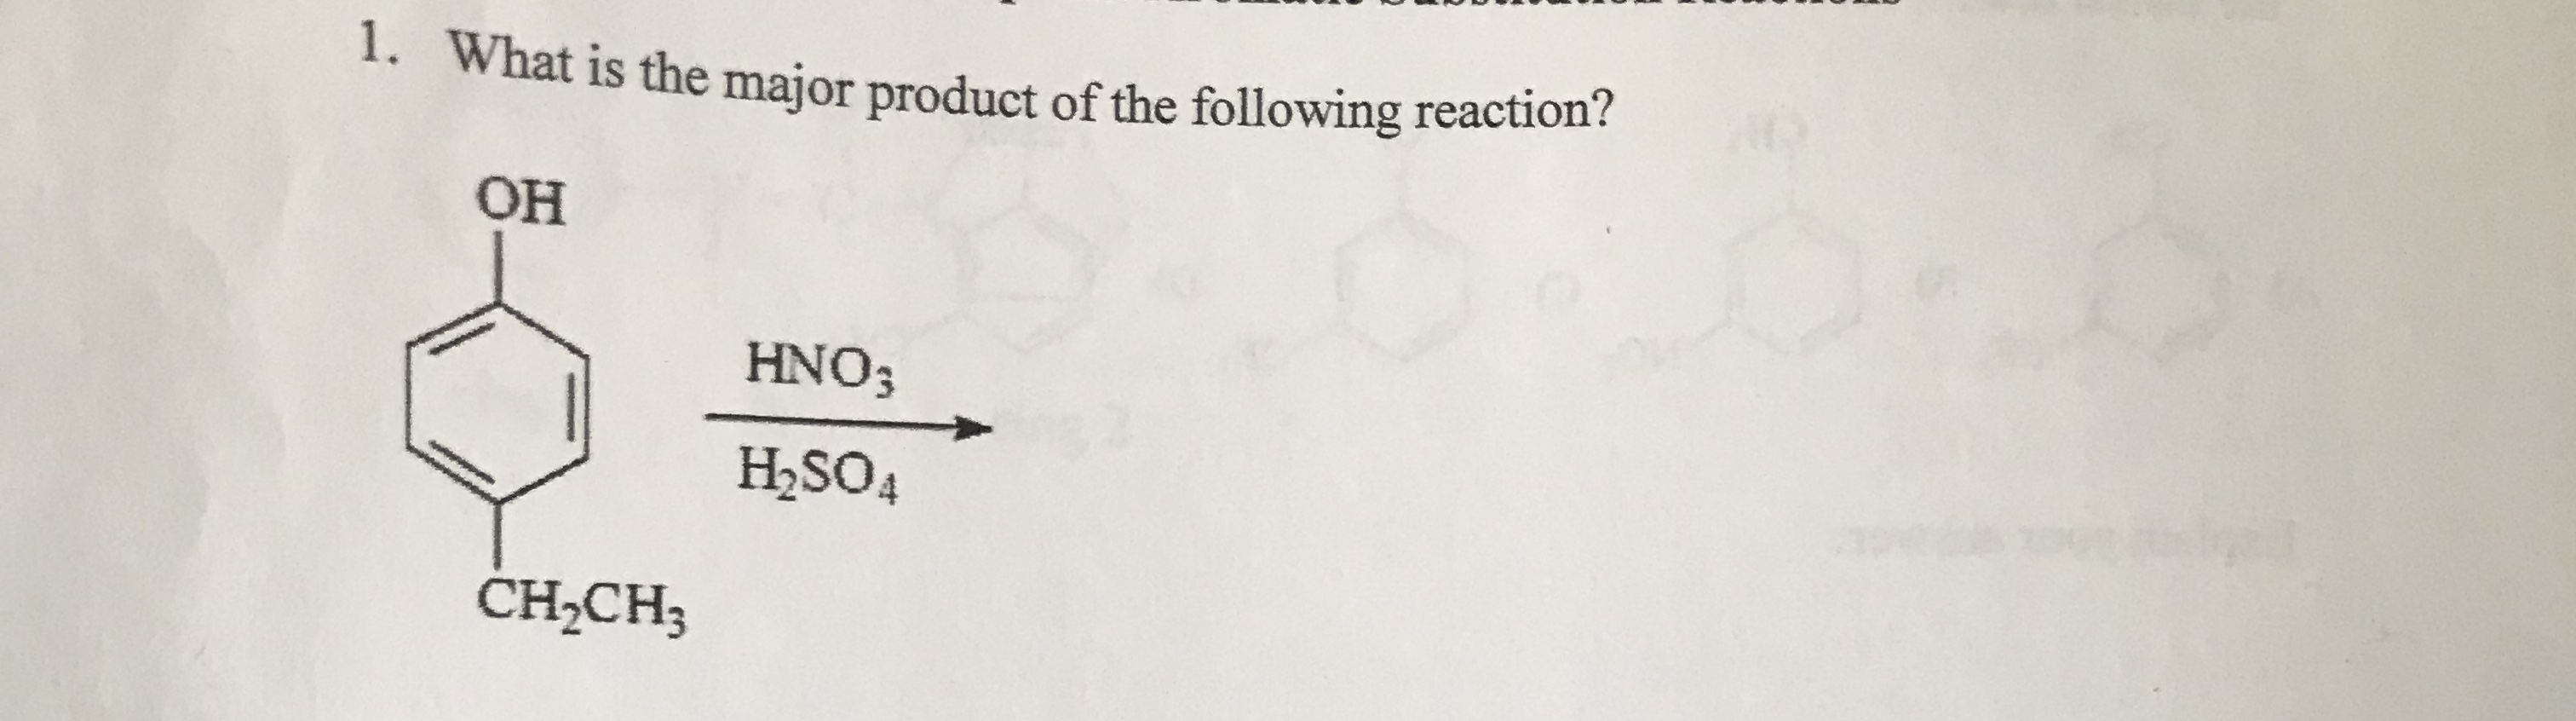 What is the major product of the following reaction? 1. OH HNO3 H2SO4 CH2CH3